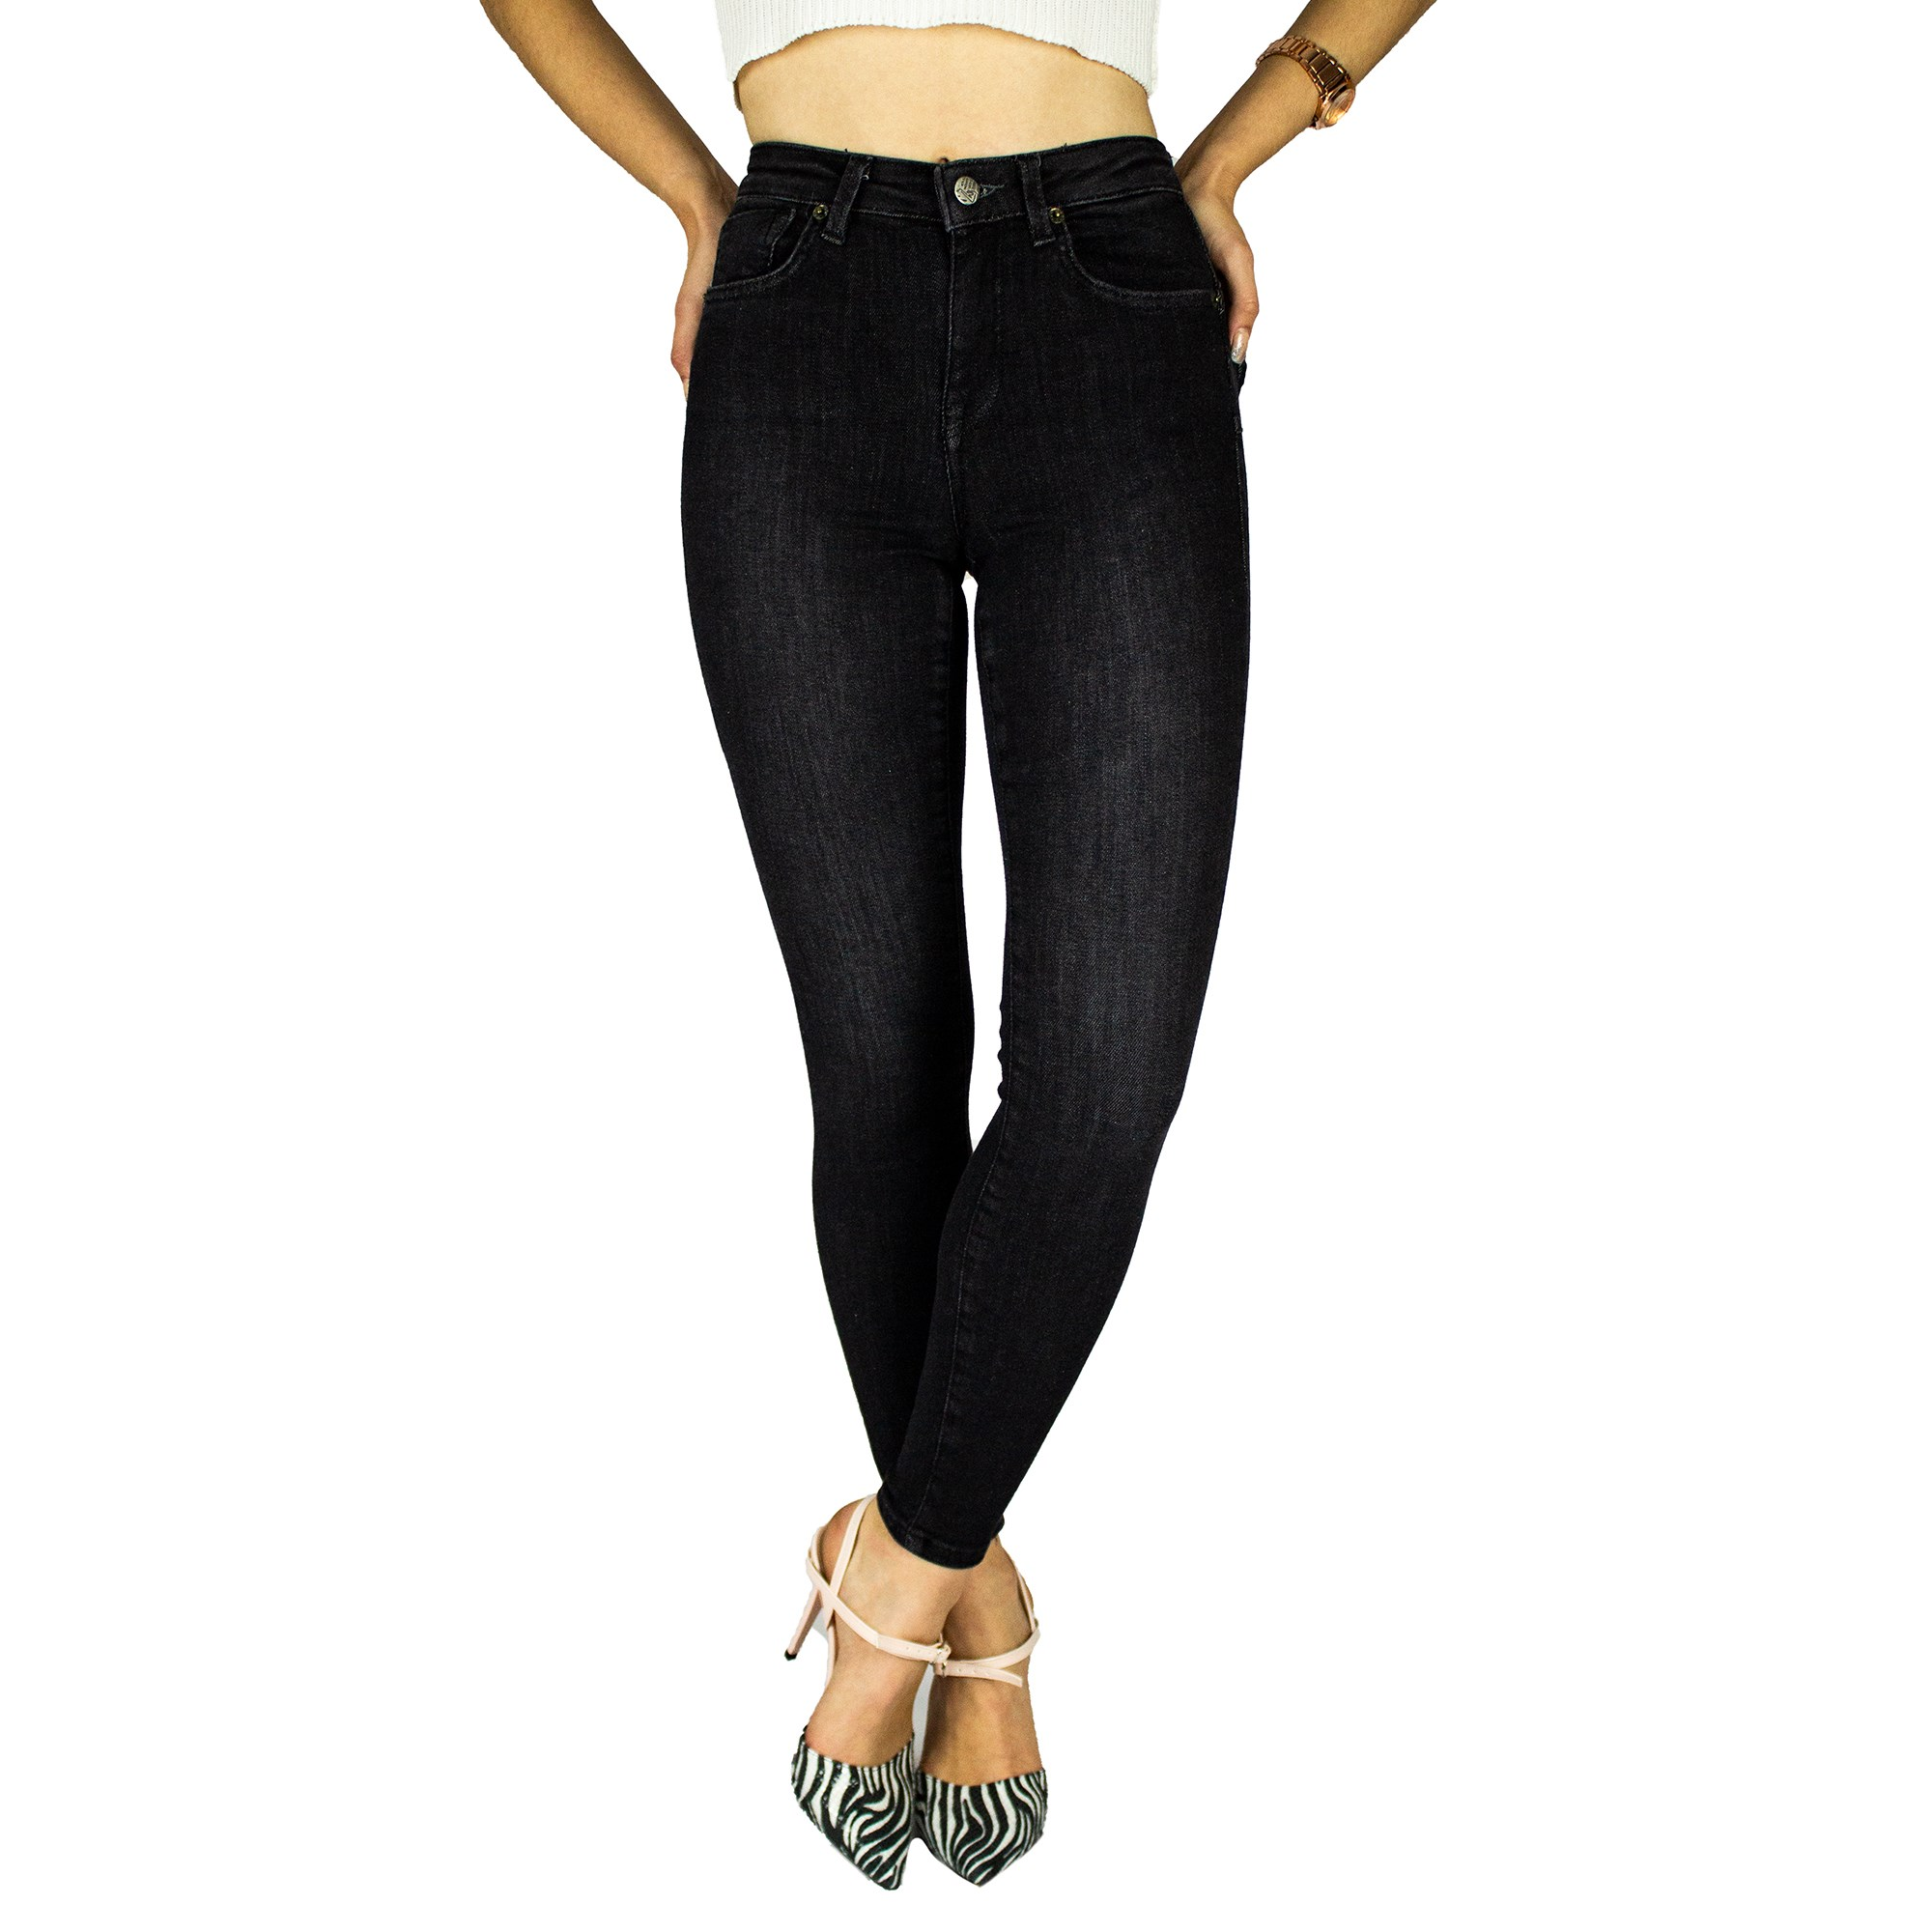 Jeans For Women Mom Jeans High Waist Jeans Female High Elastic Plus Size Stretch Jeans Female Washed Denim Skinny Pencil Pants